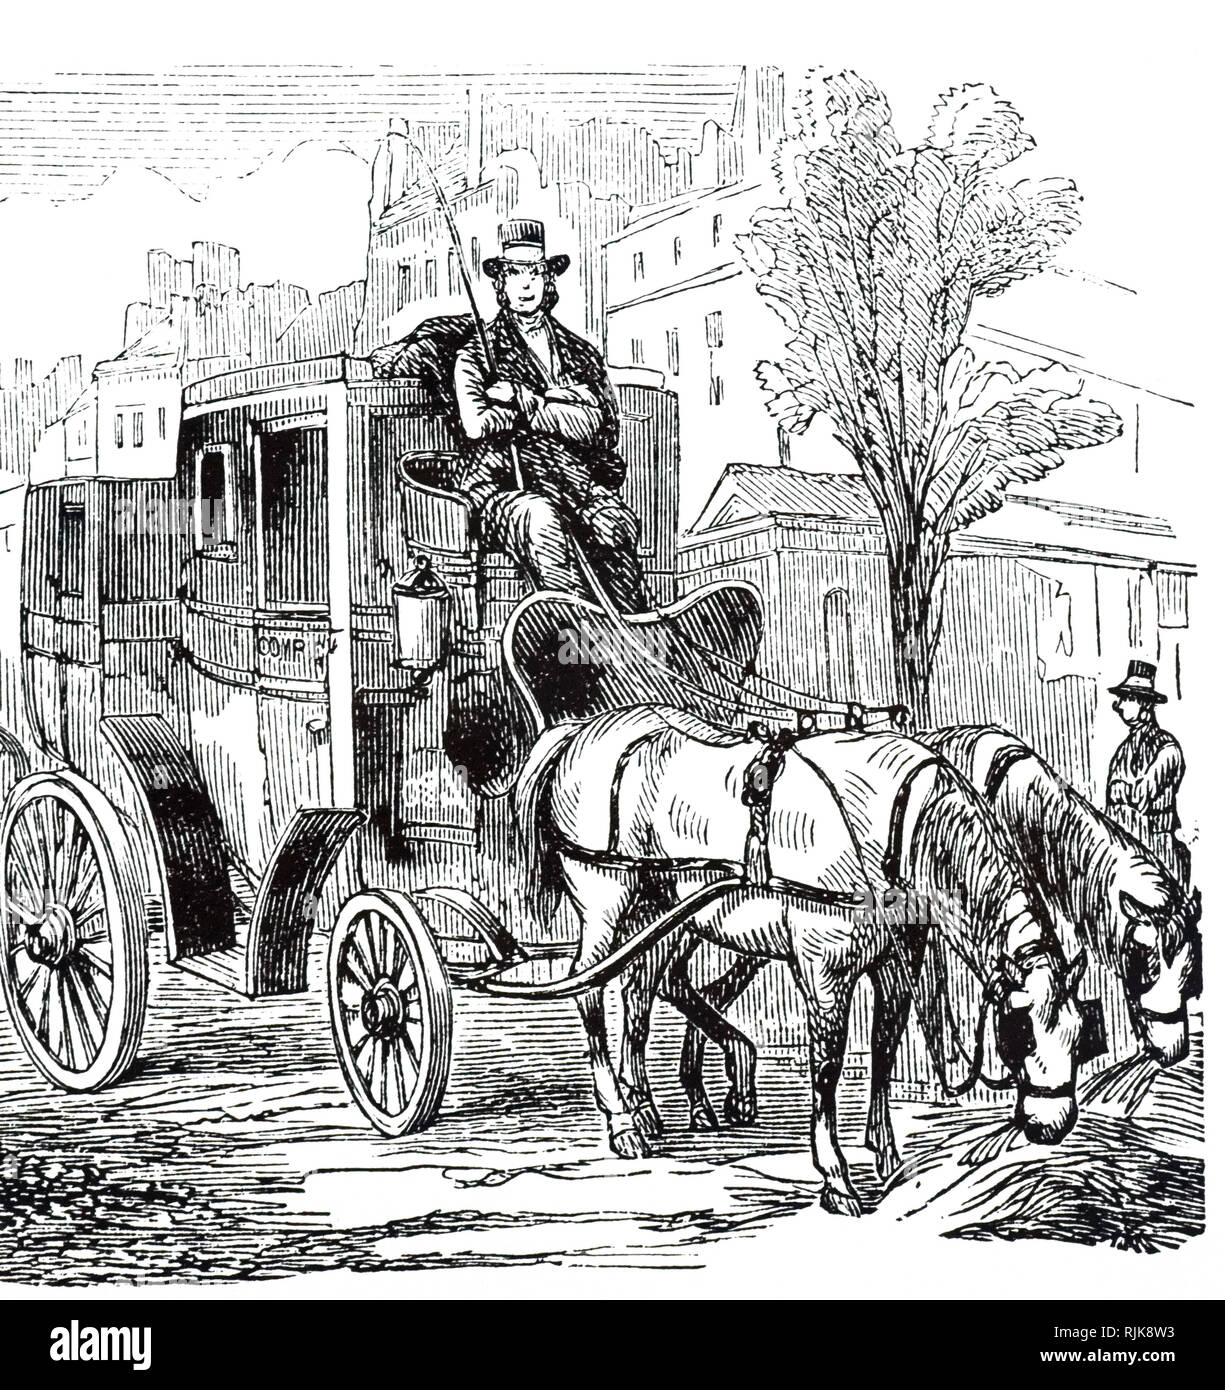 An engraving depicting a Fiacre, a form of a hackney coach, a horse-drawn four-wheeled carriage for hire. Dated 19th century - Stock Image